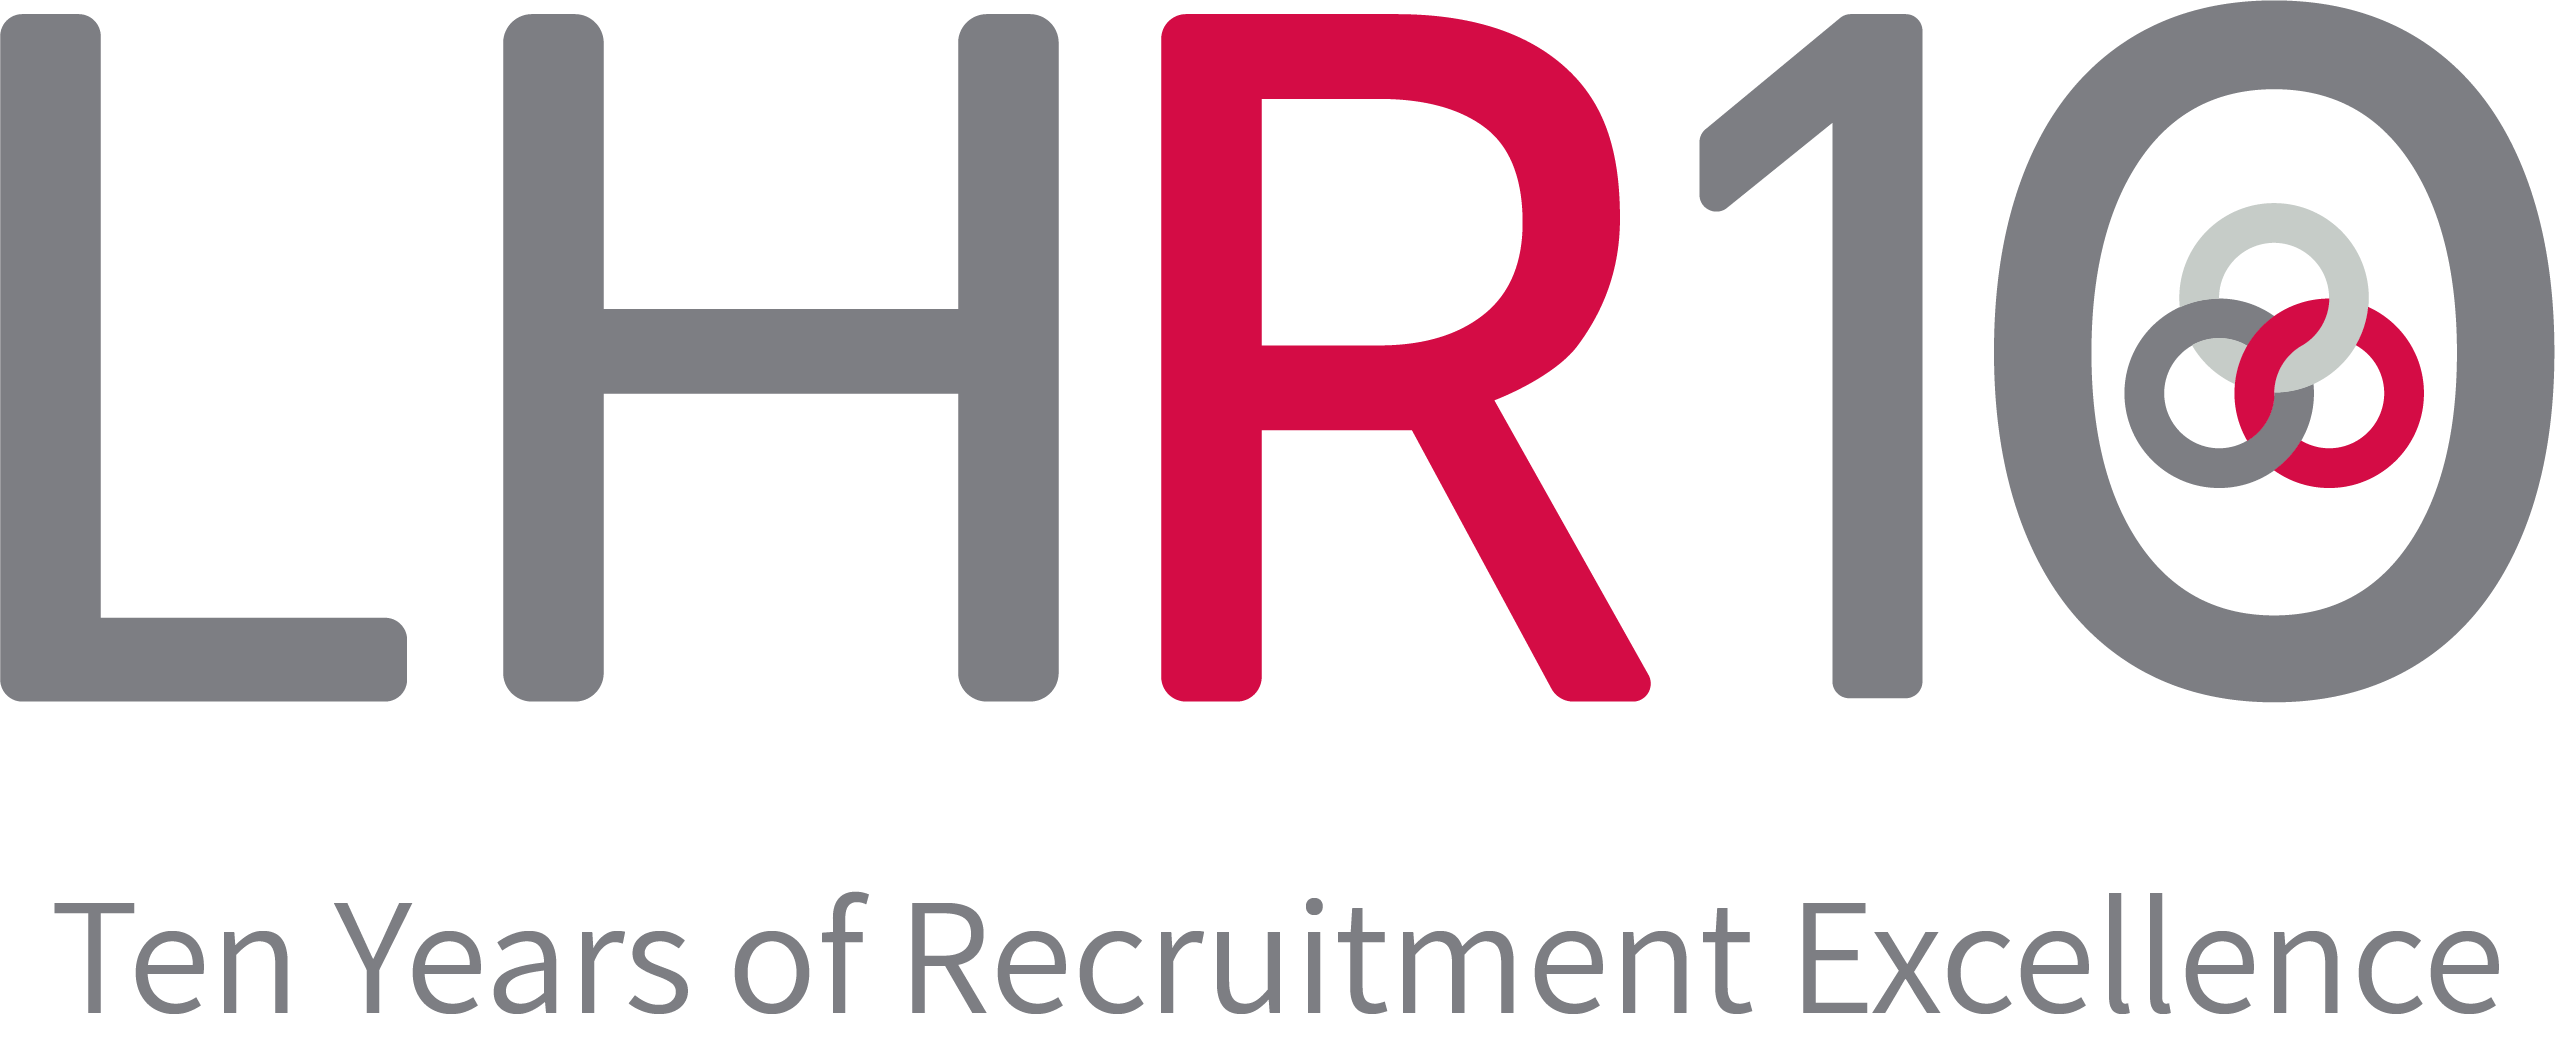 Recruitment for Blackburn, Bolton, Burnley and across Lancashire